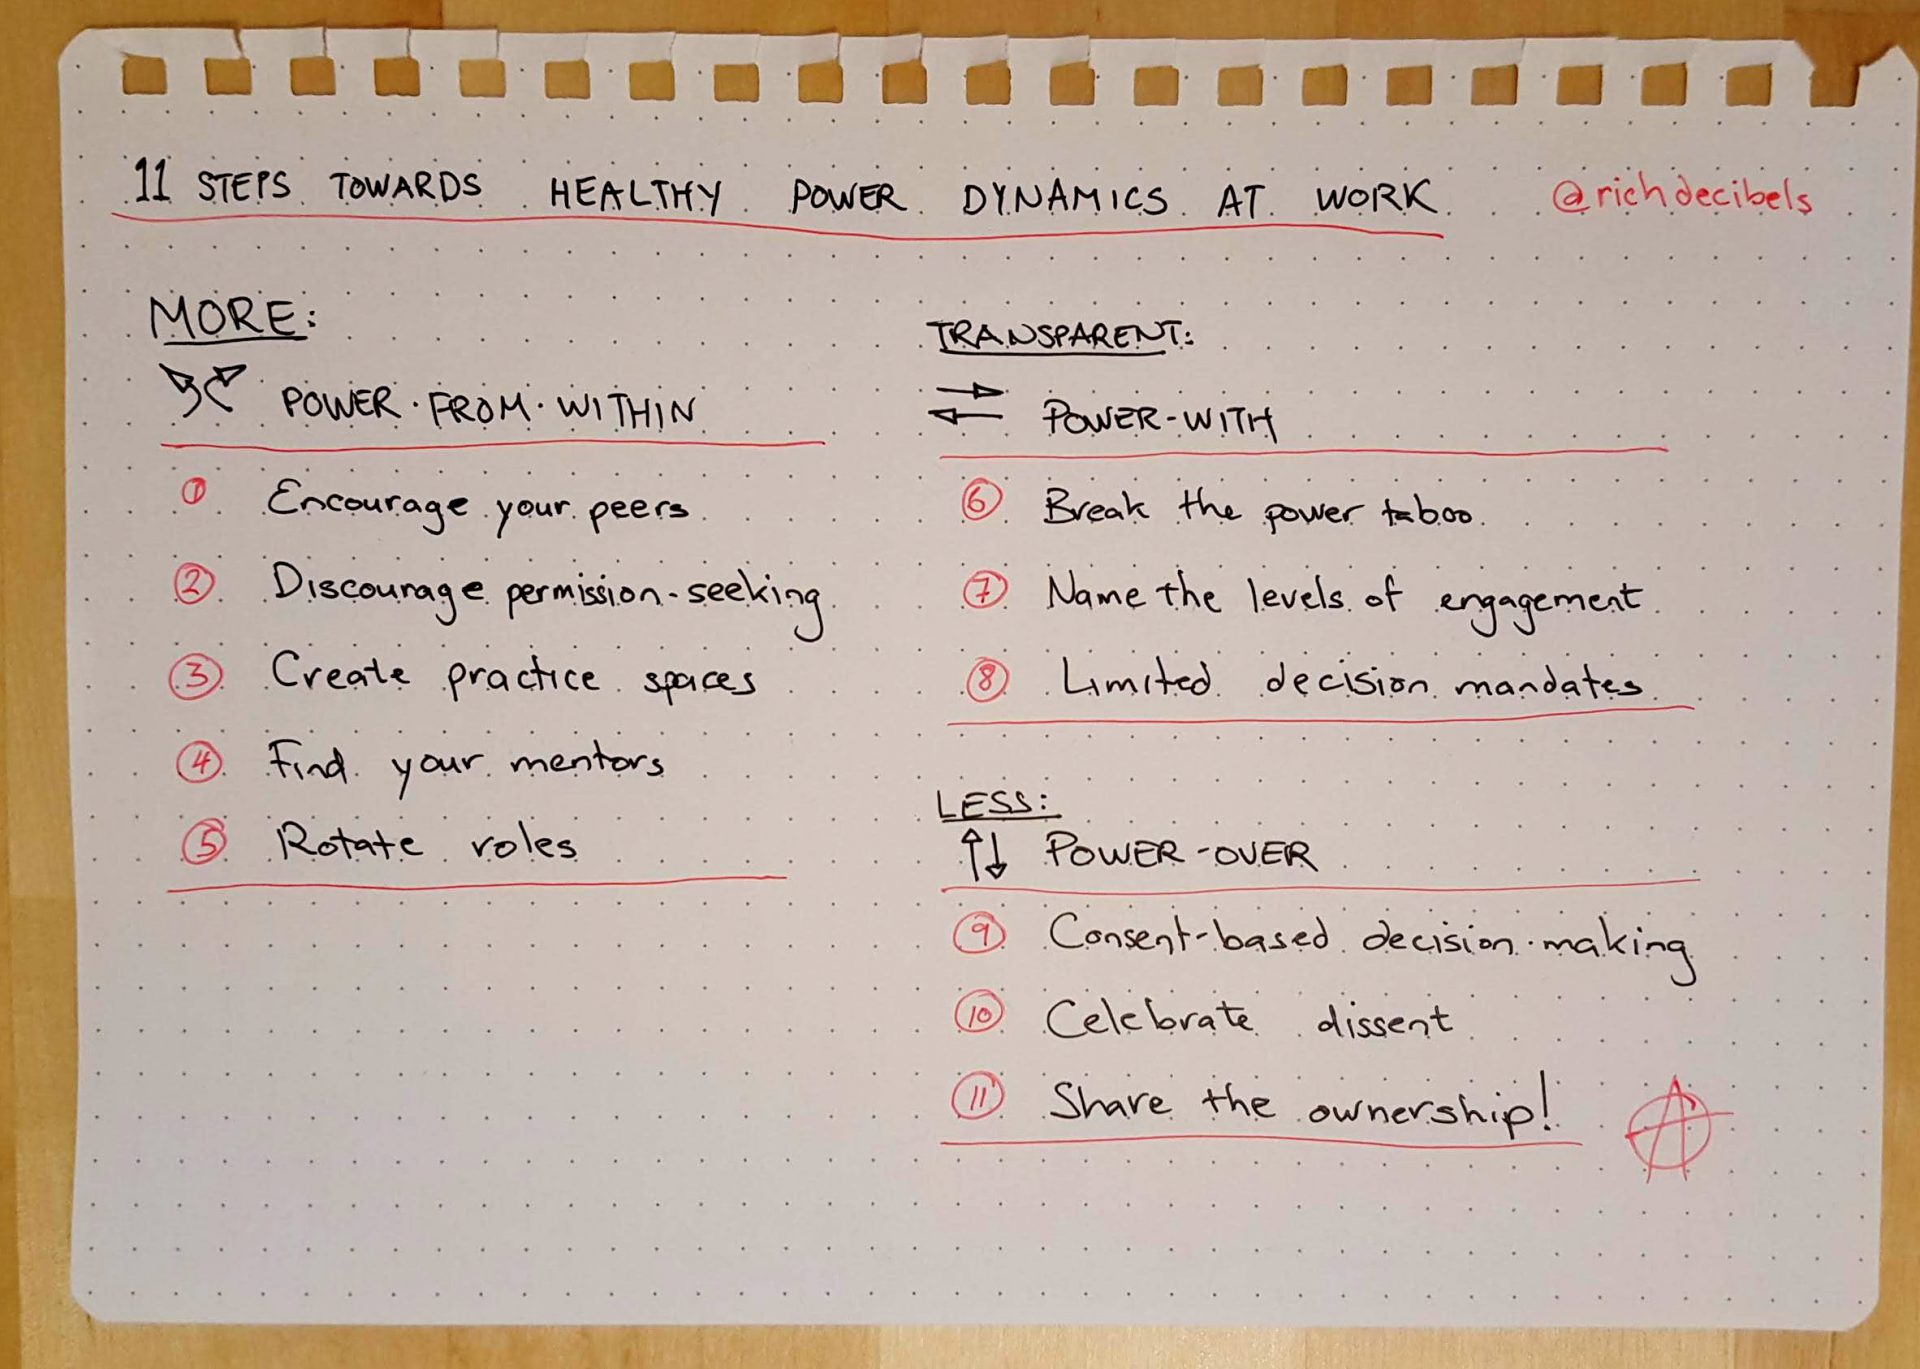 11 Practical Steps Towards Healthy Power Dynamics at Work